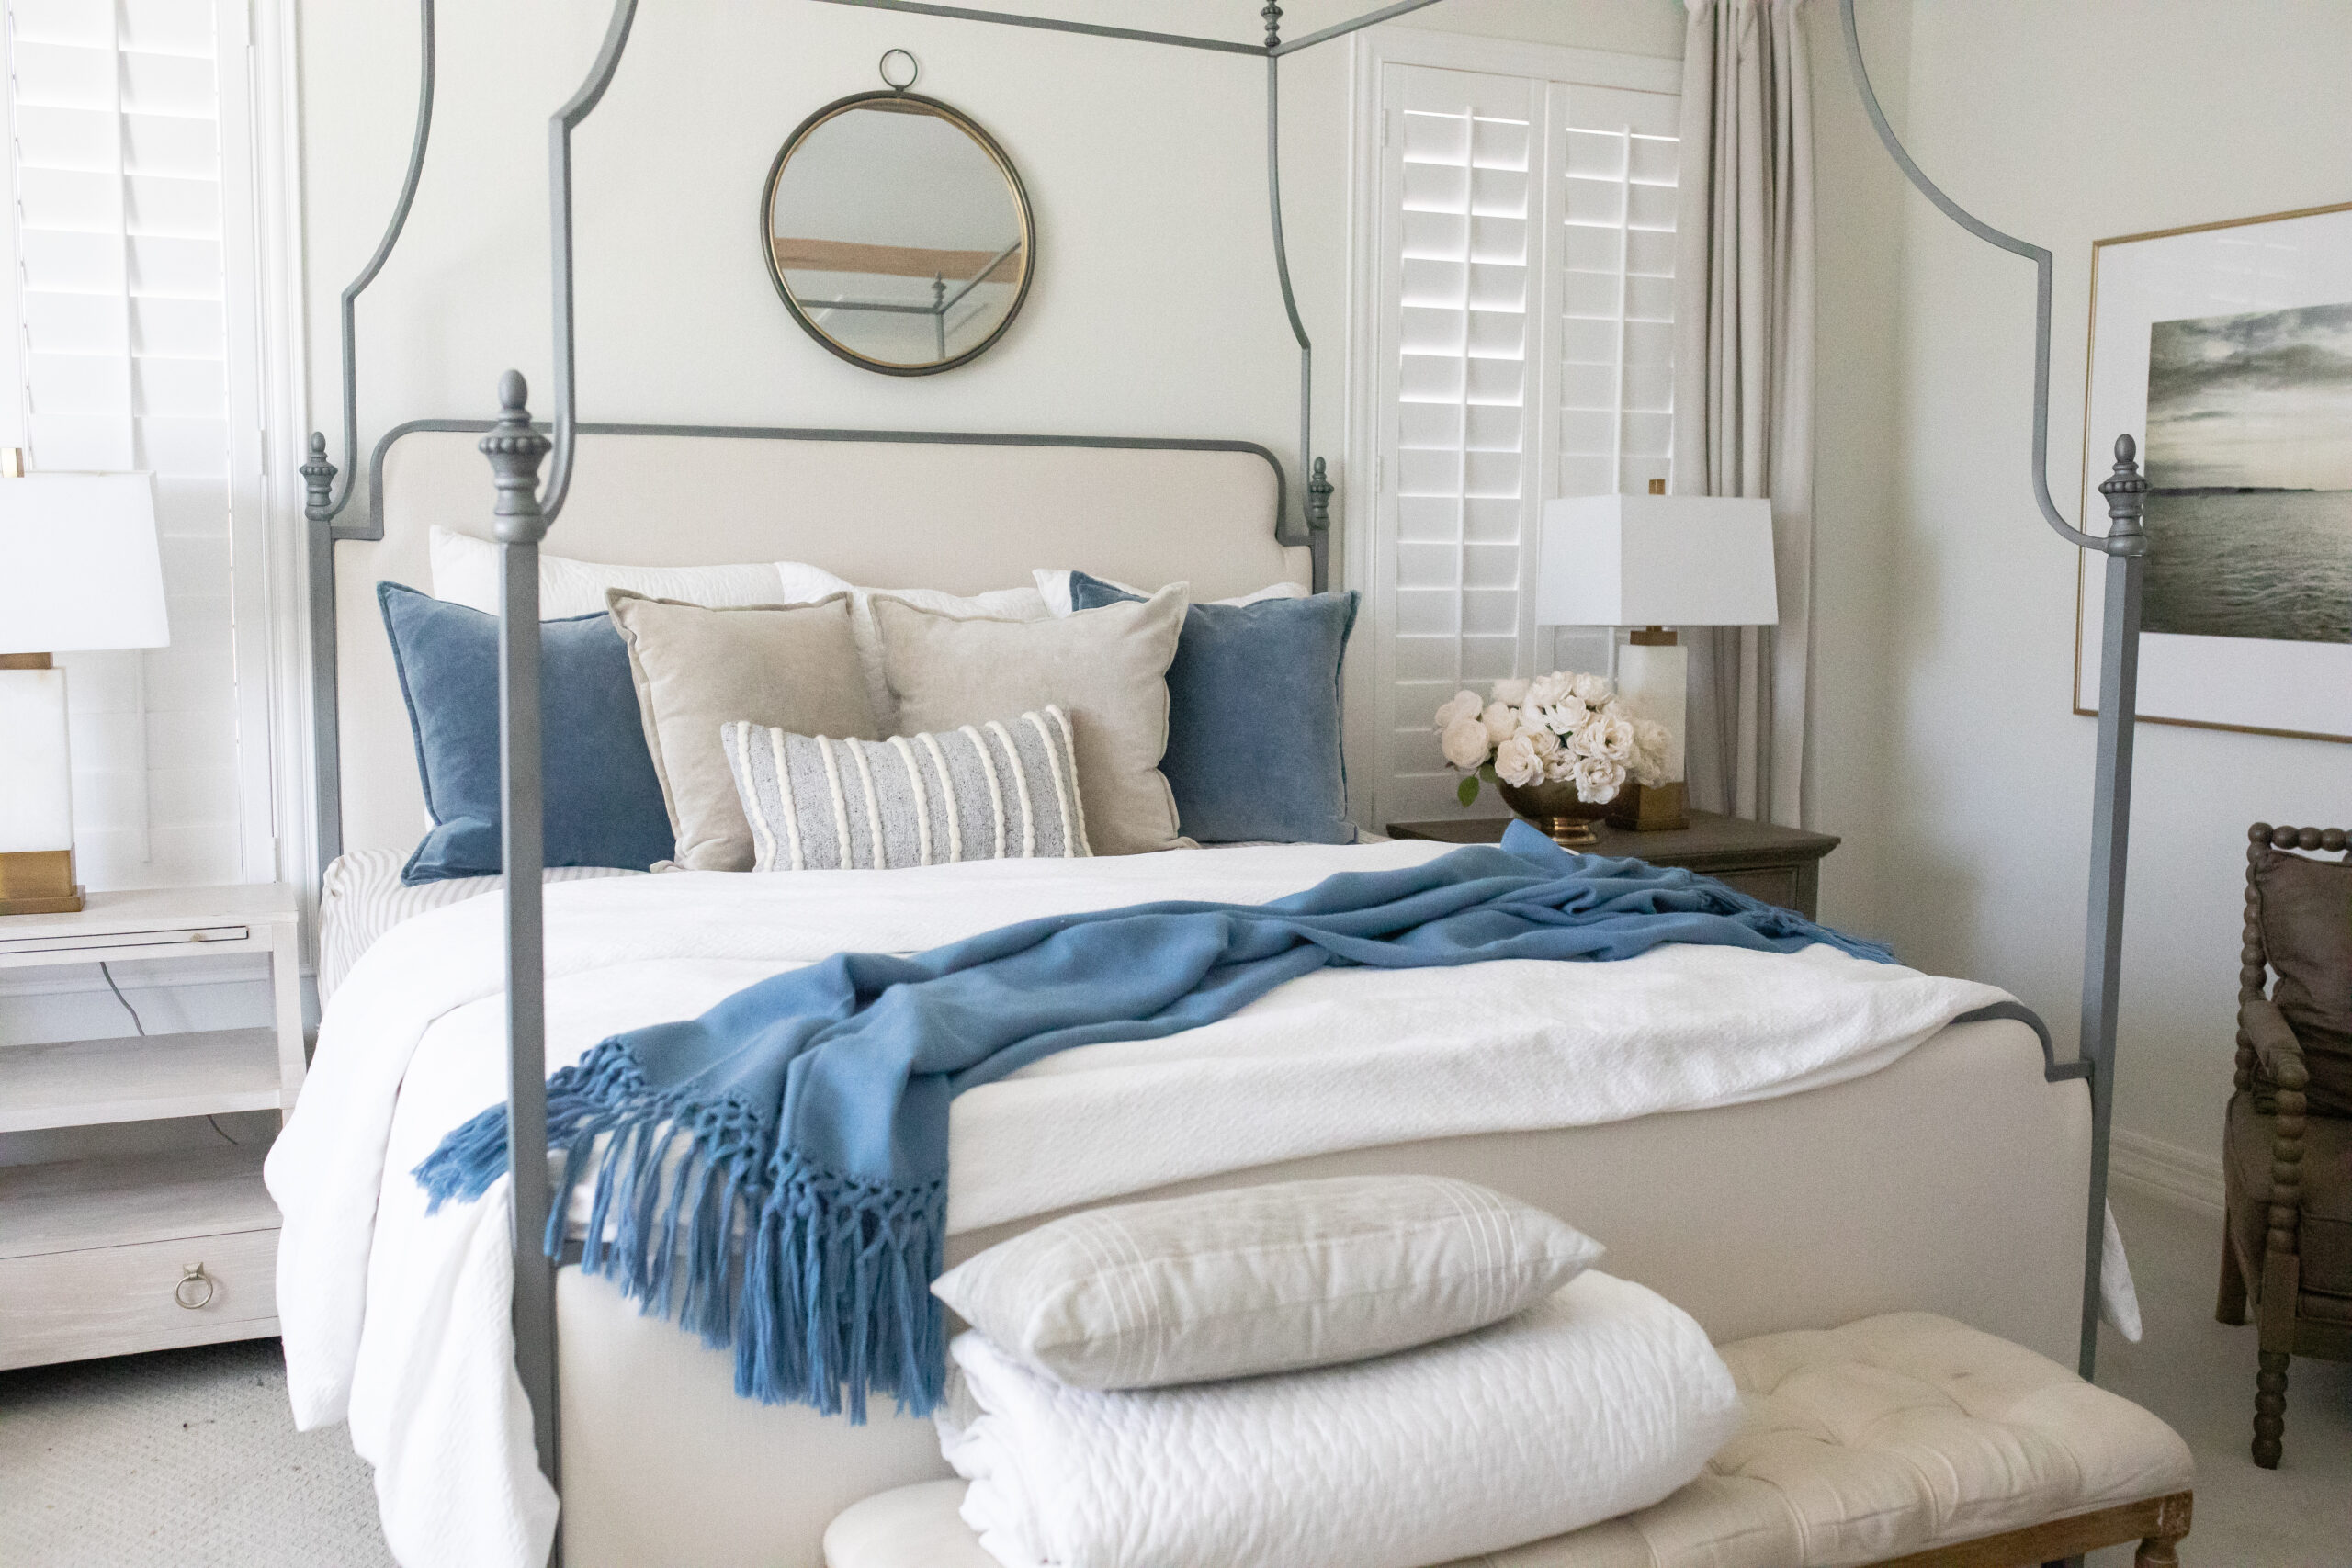 Bedroom with a touch of blue